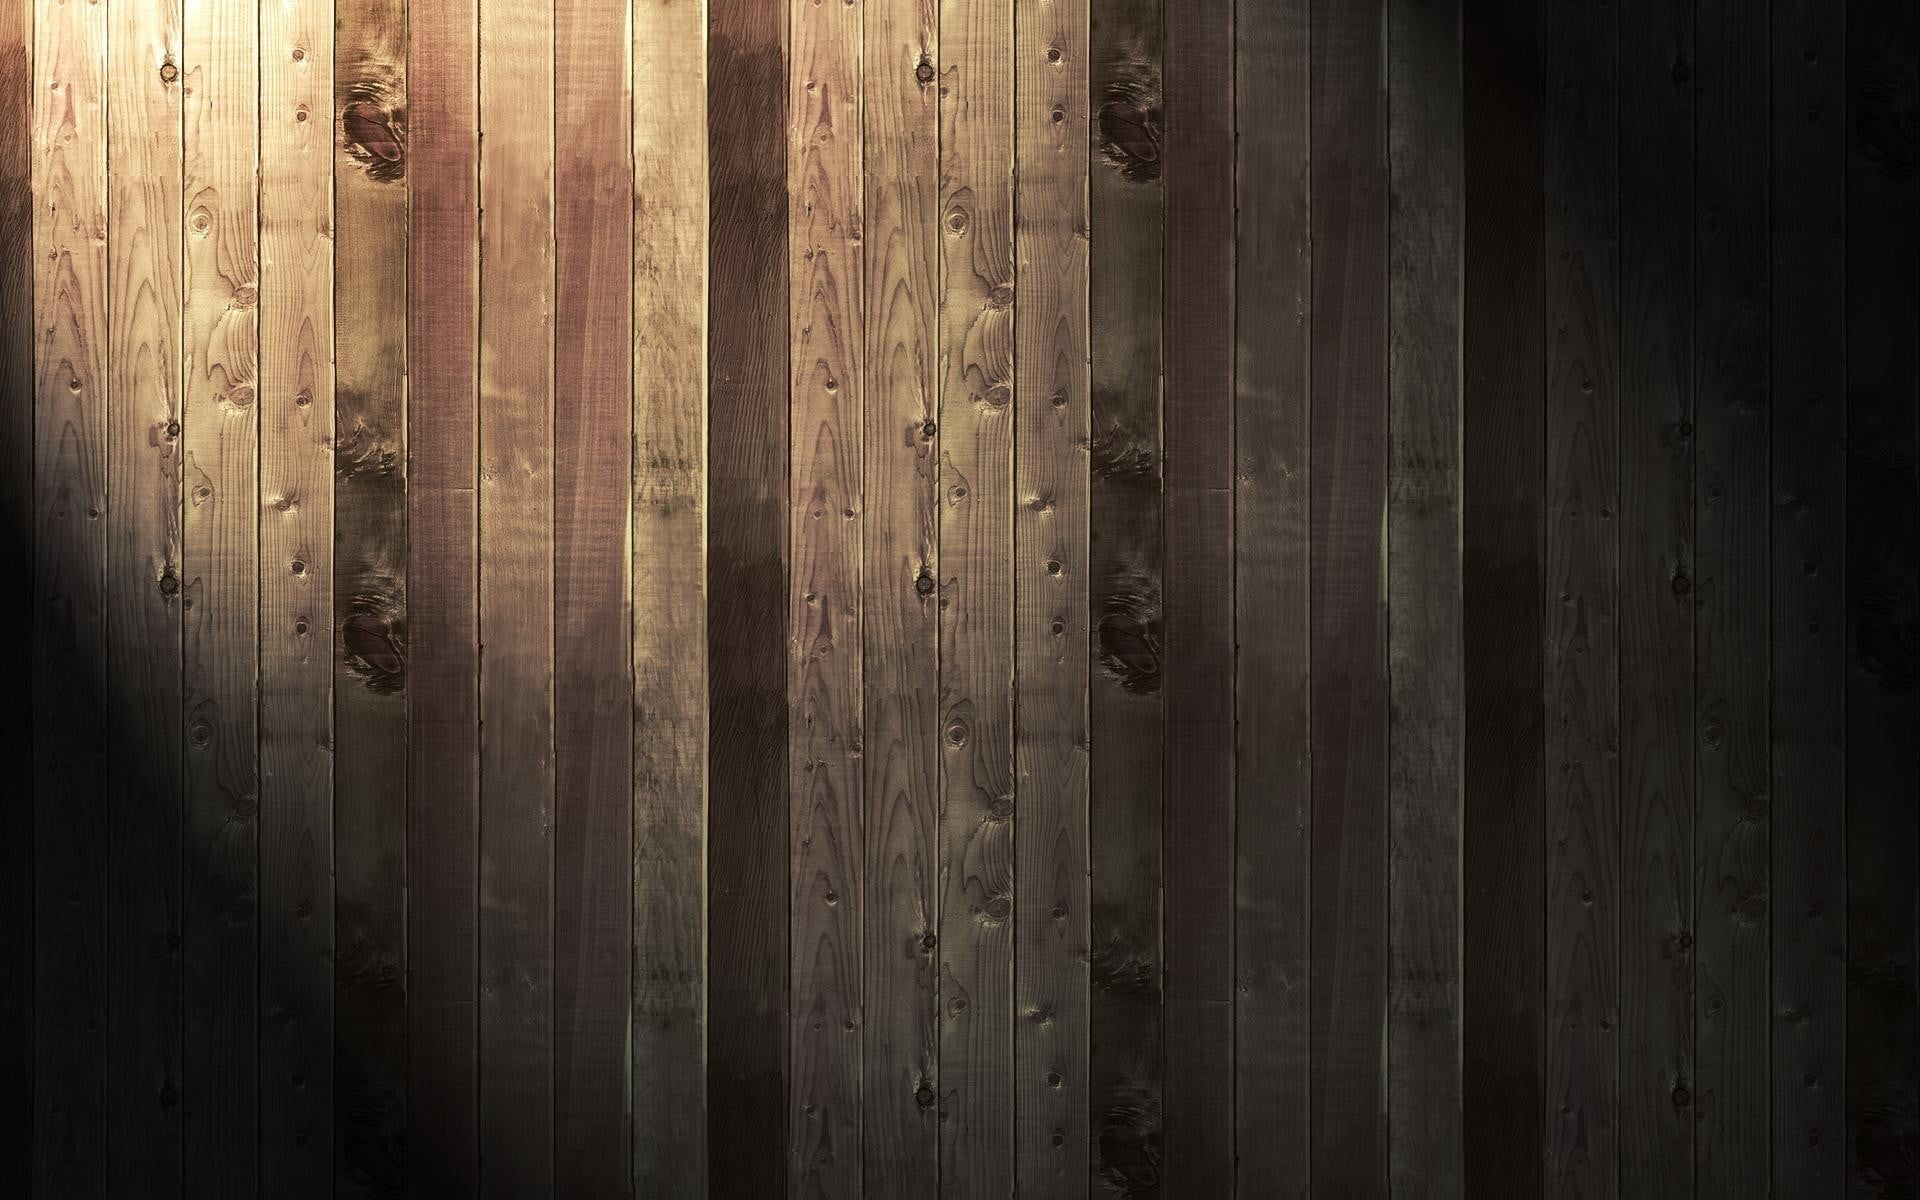 Brown Wooden Wood Pallet Wood Texture 1080p Wallpaper Hdwallpaper Desktop Wood Wallpaper Wood Background Wallpapers Wood Images